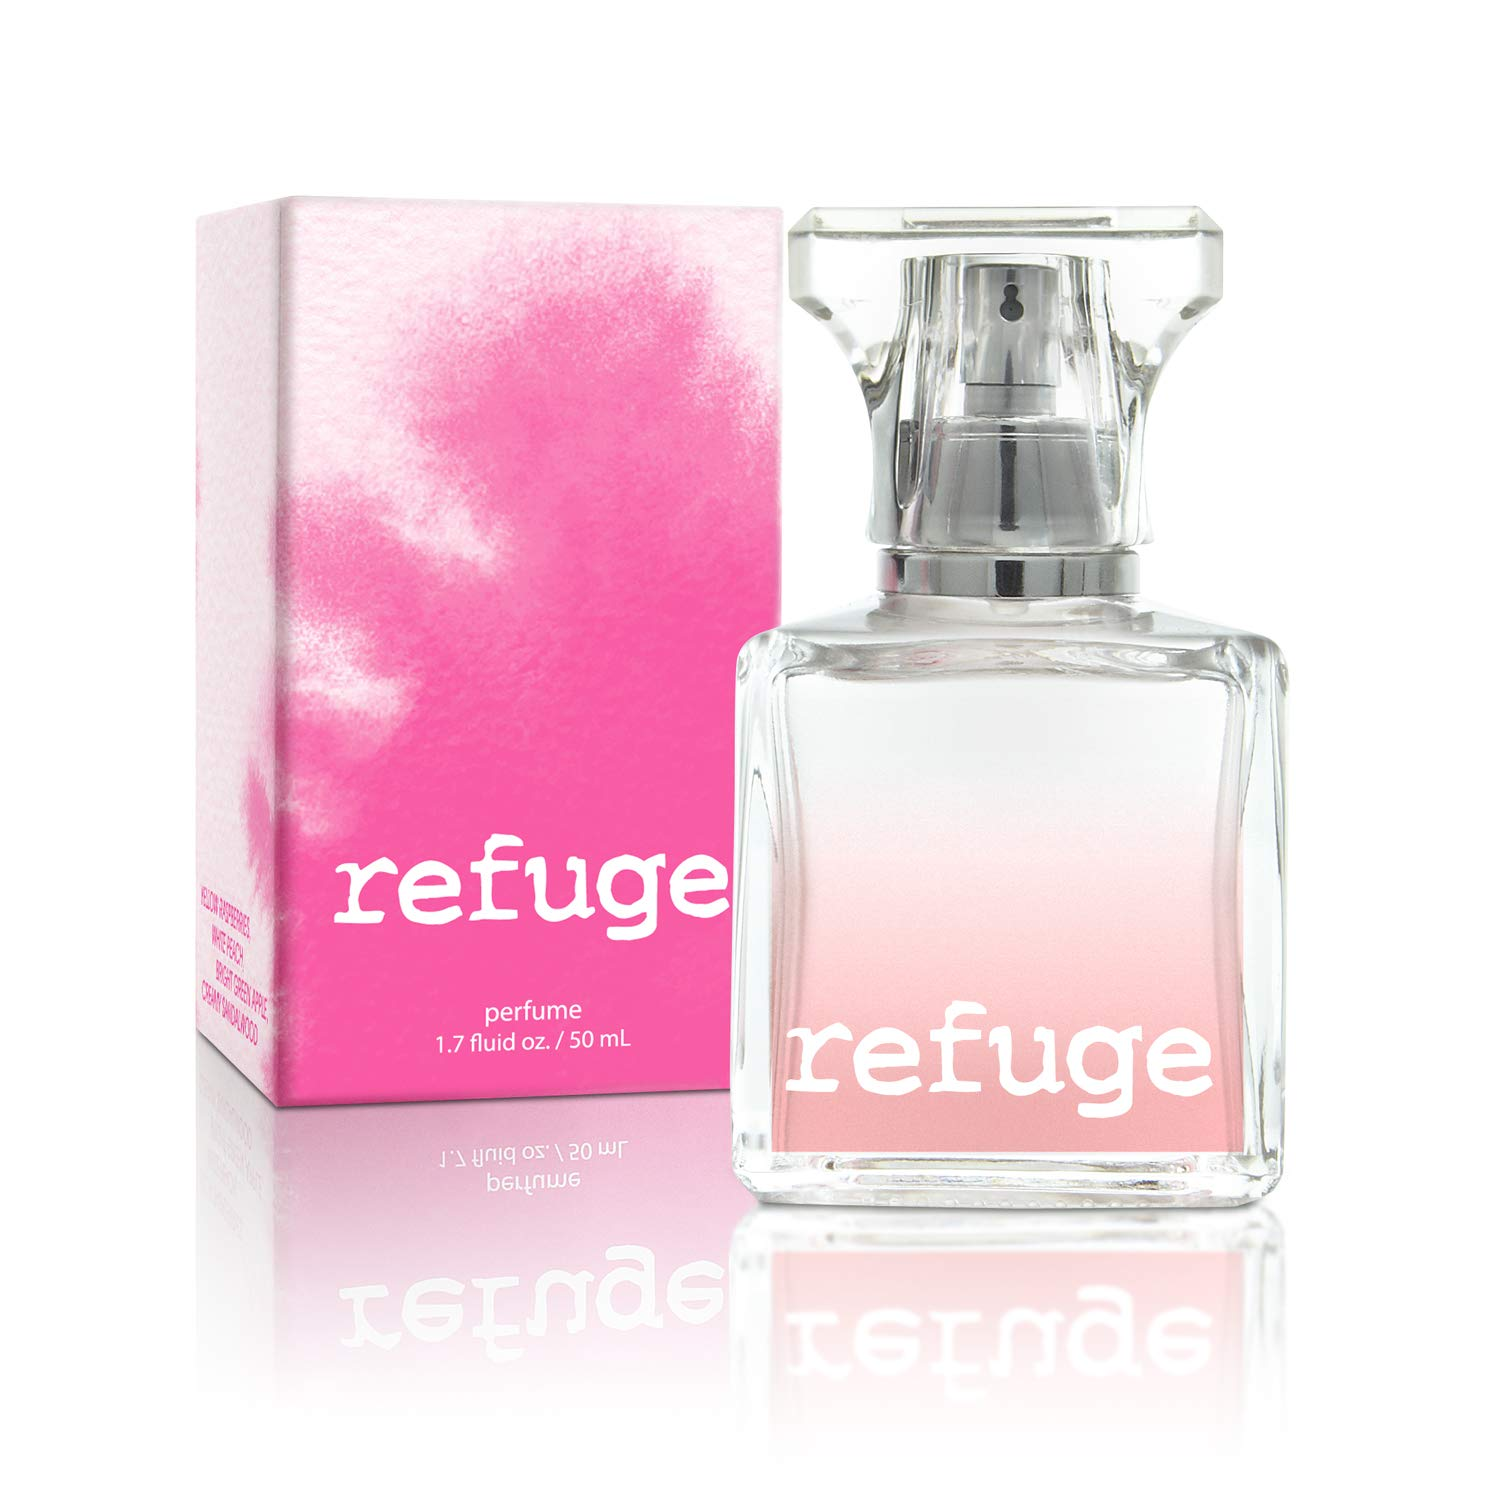 CHARLOTTE RUSSE Refuge Perfume Spray - Fresh Fruity Floral Fragrance for Daytime Wear, Evening Wear and Special Occasions - Raspberry, Peach, Apple, Sandalwood - 1.7 oz / 50 ml